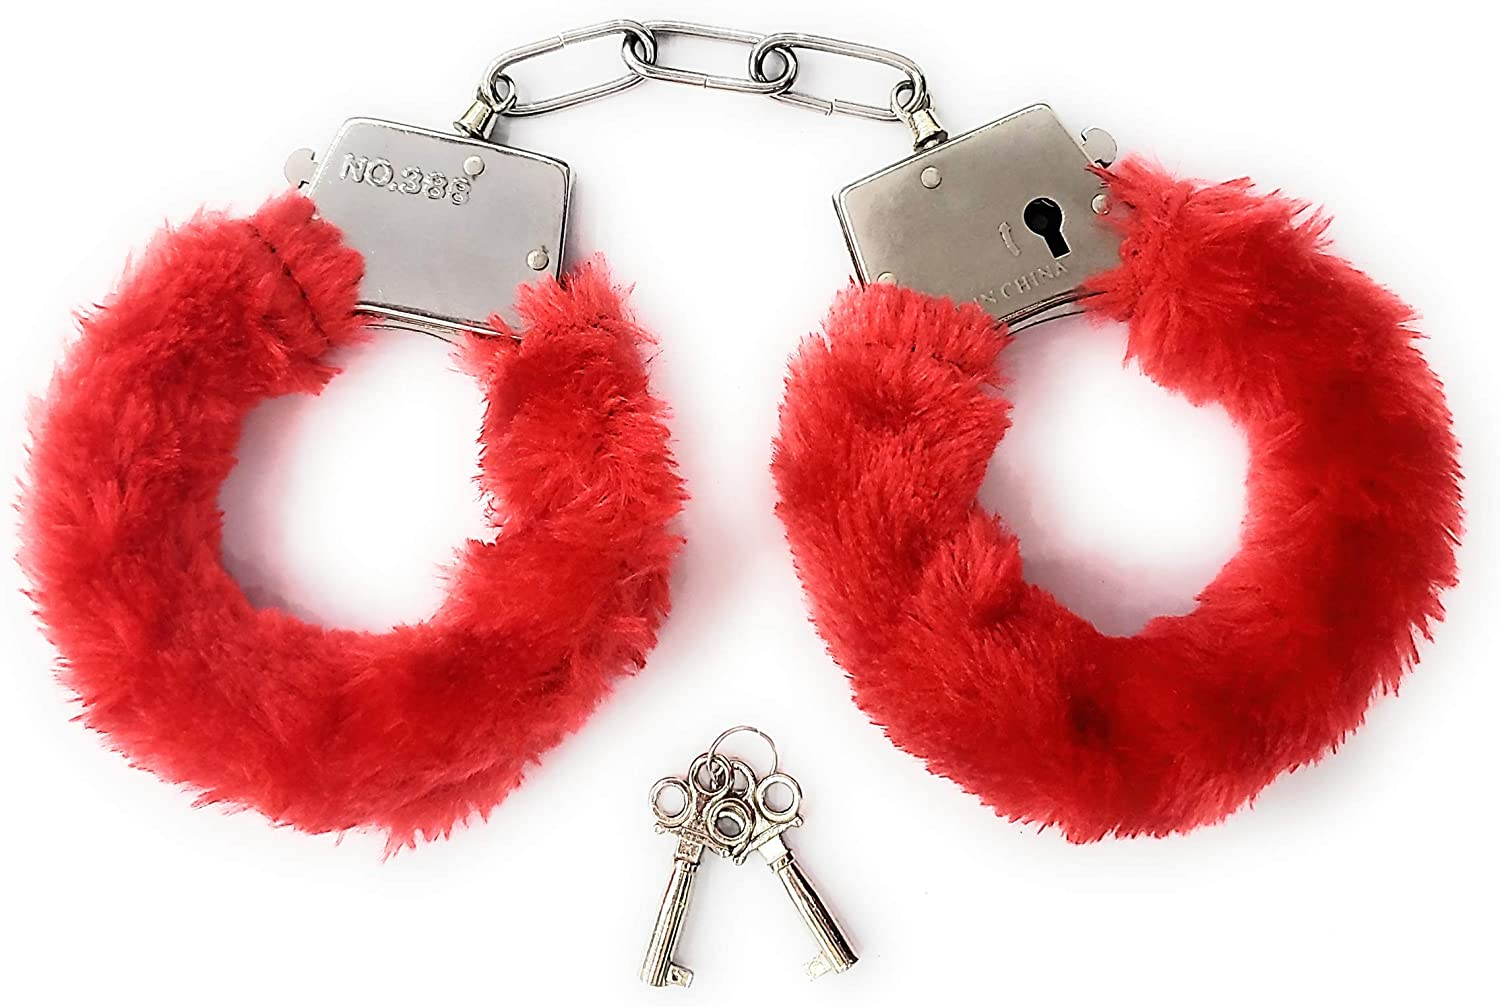 JASINCESS Plush Toy Handcuffs with Keys Toy Police Costume Prop Accessories Party Supplies